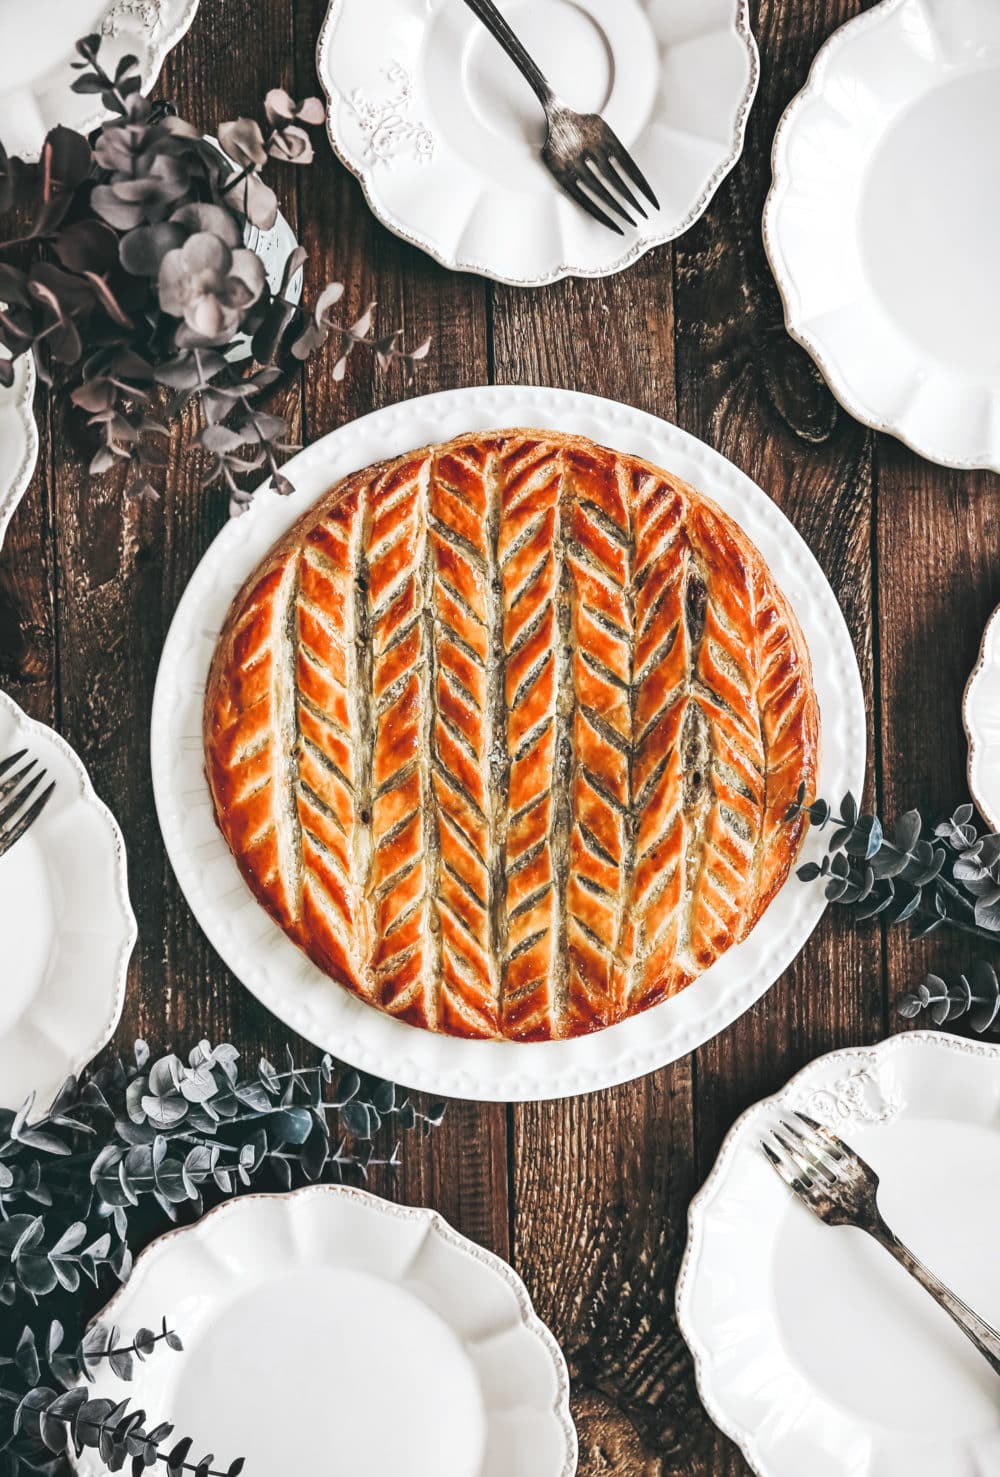 Chocolate french galette des rois